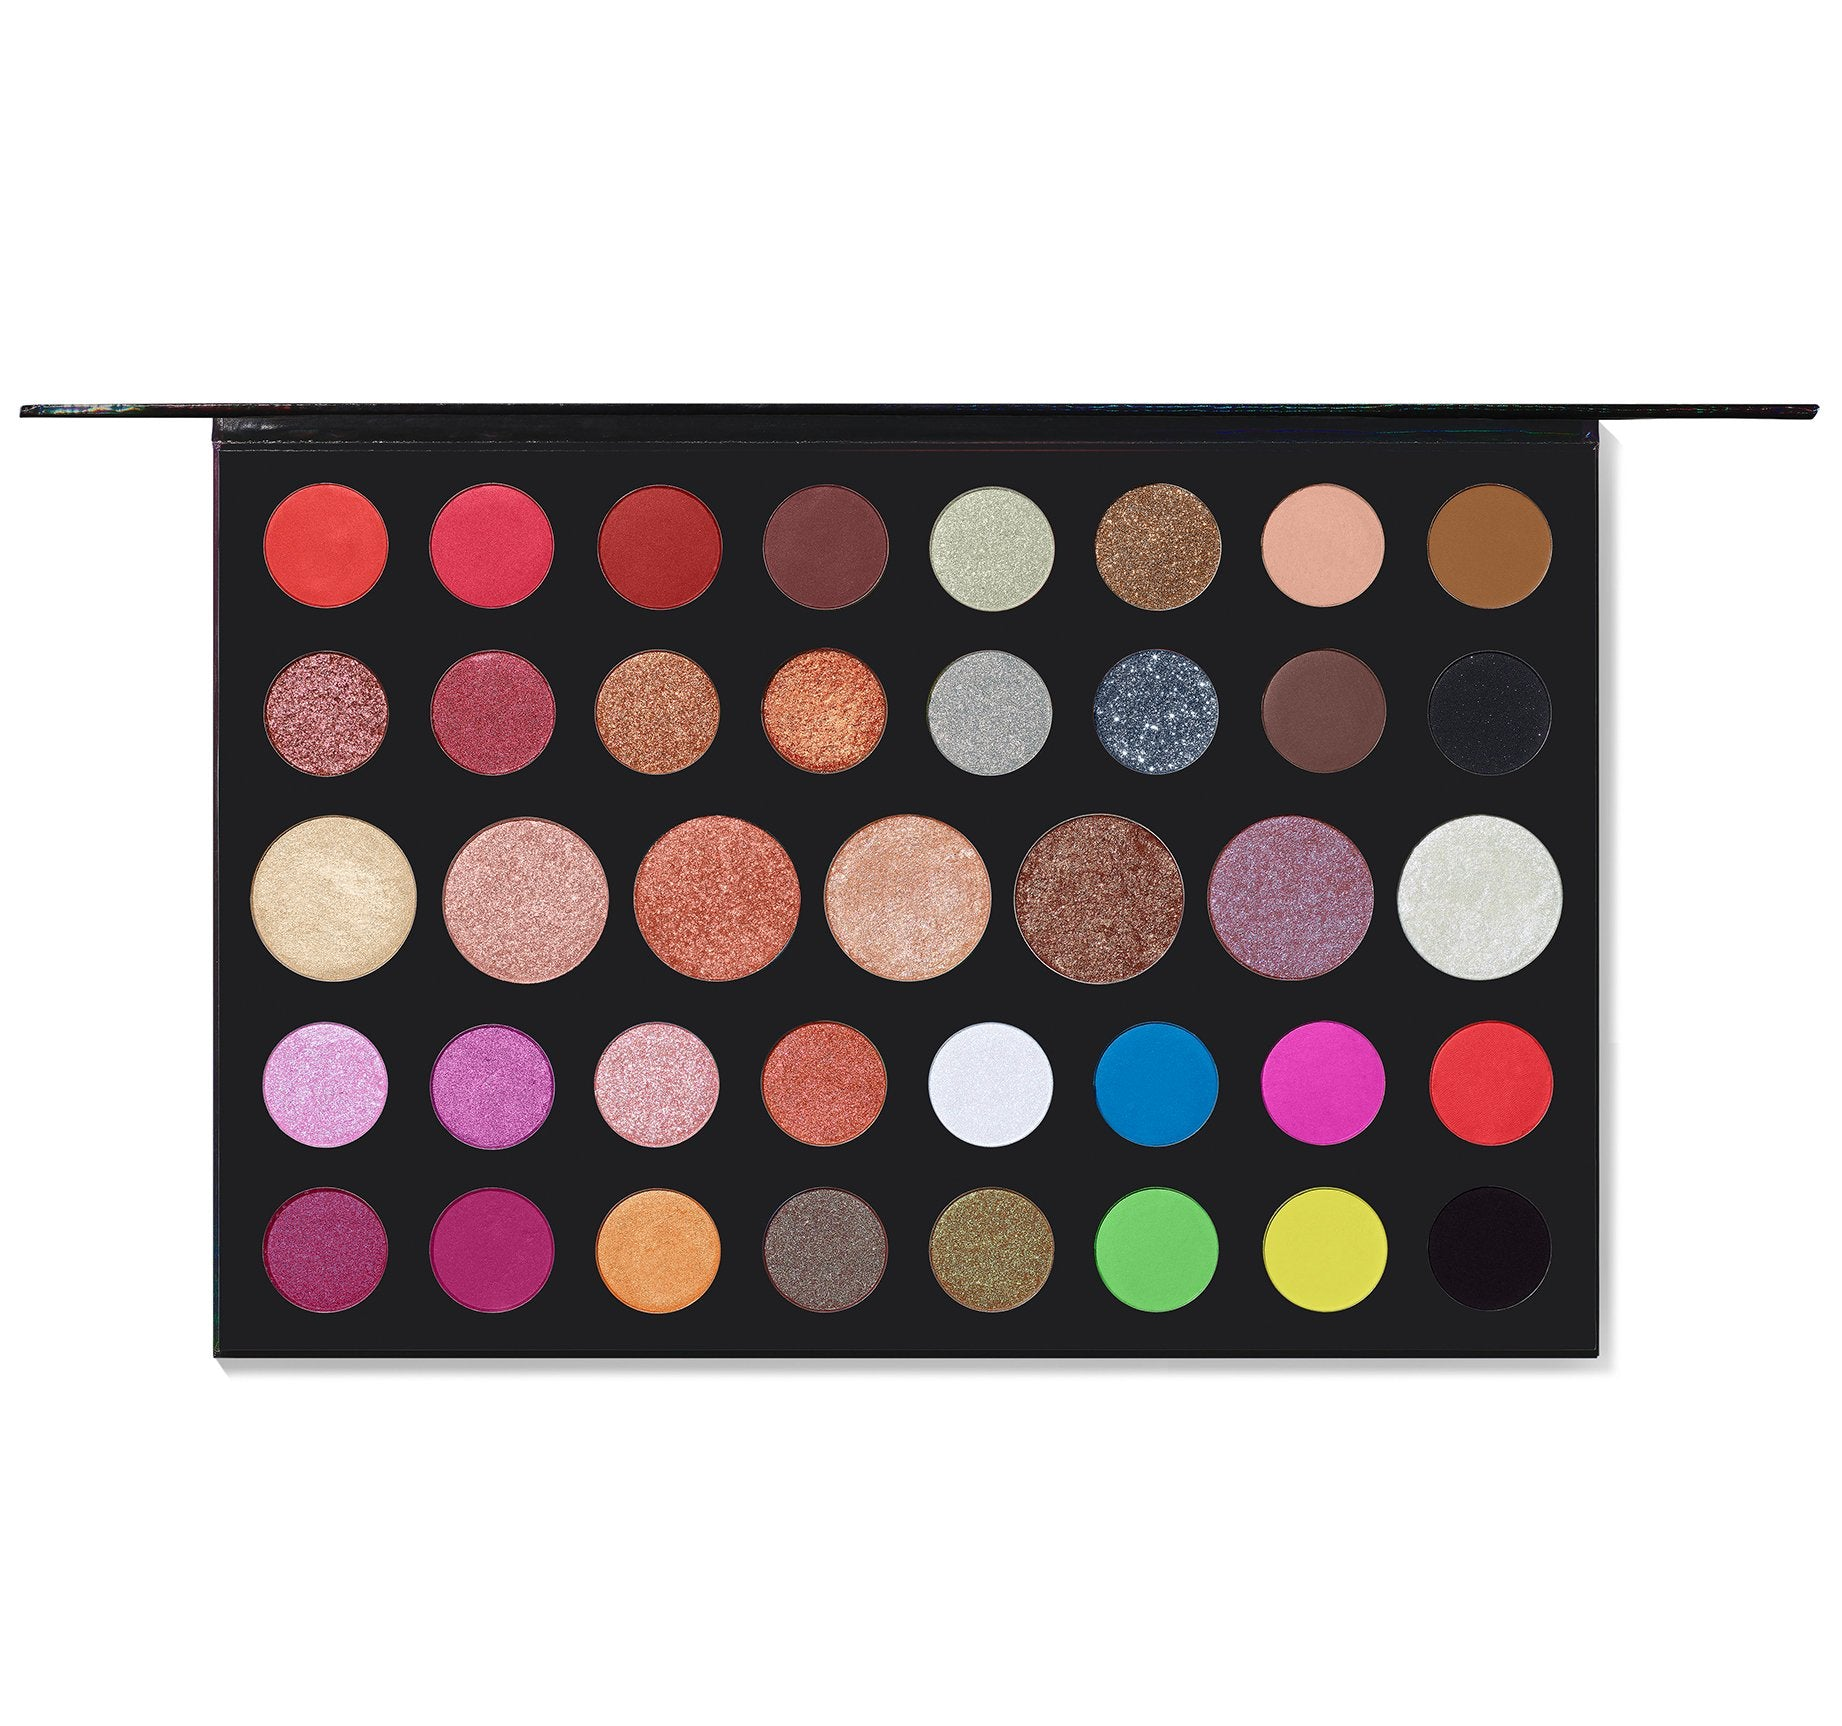 39L HIT THE LIGHTS ARTISTRY PALETTE, view larger image